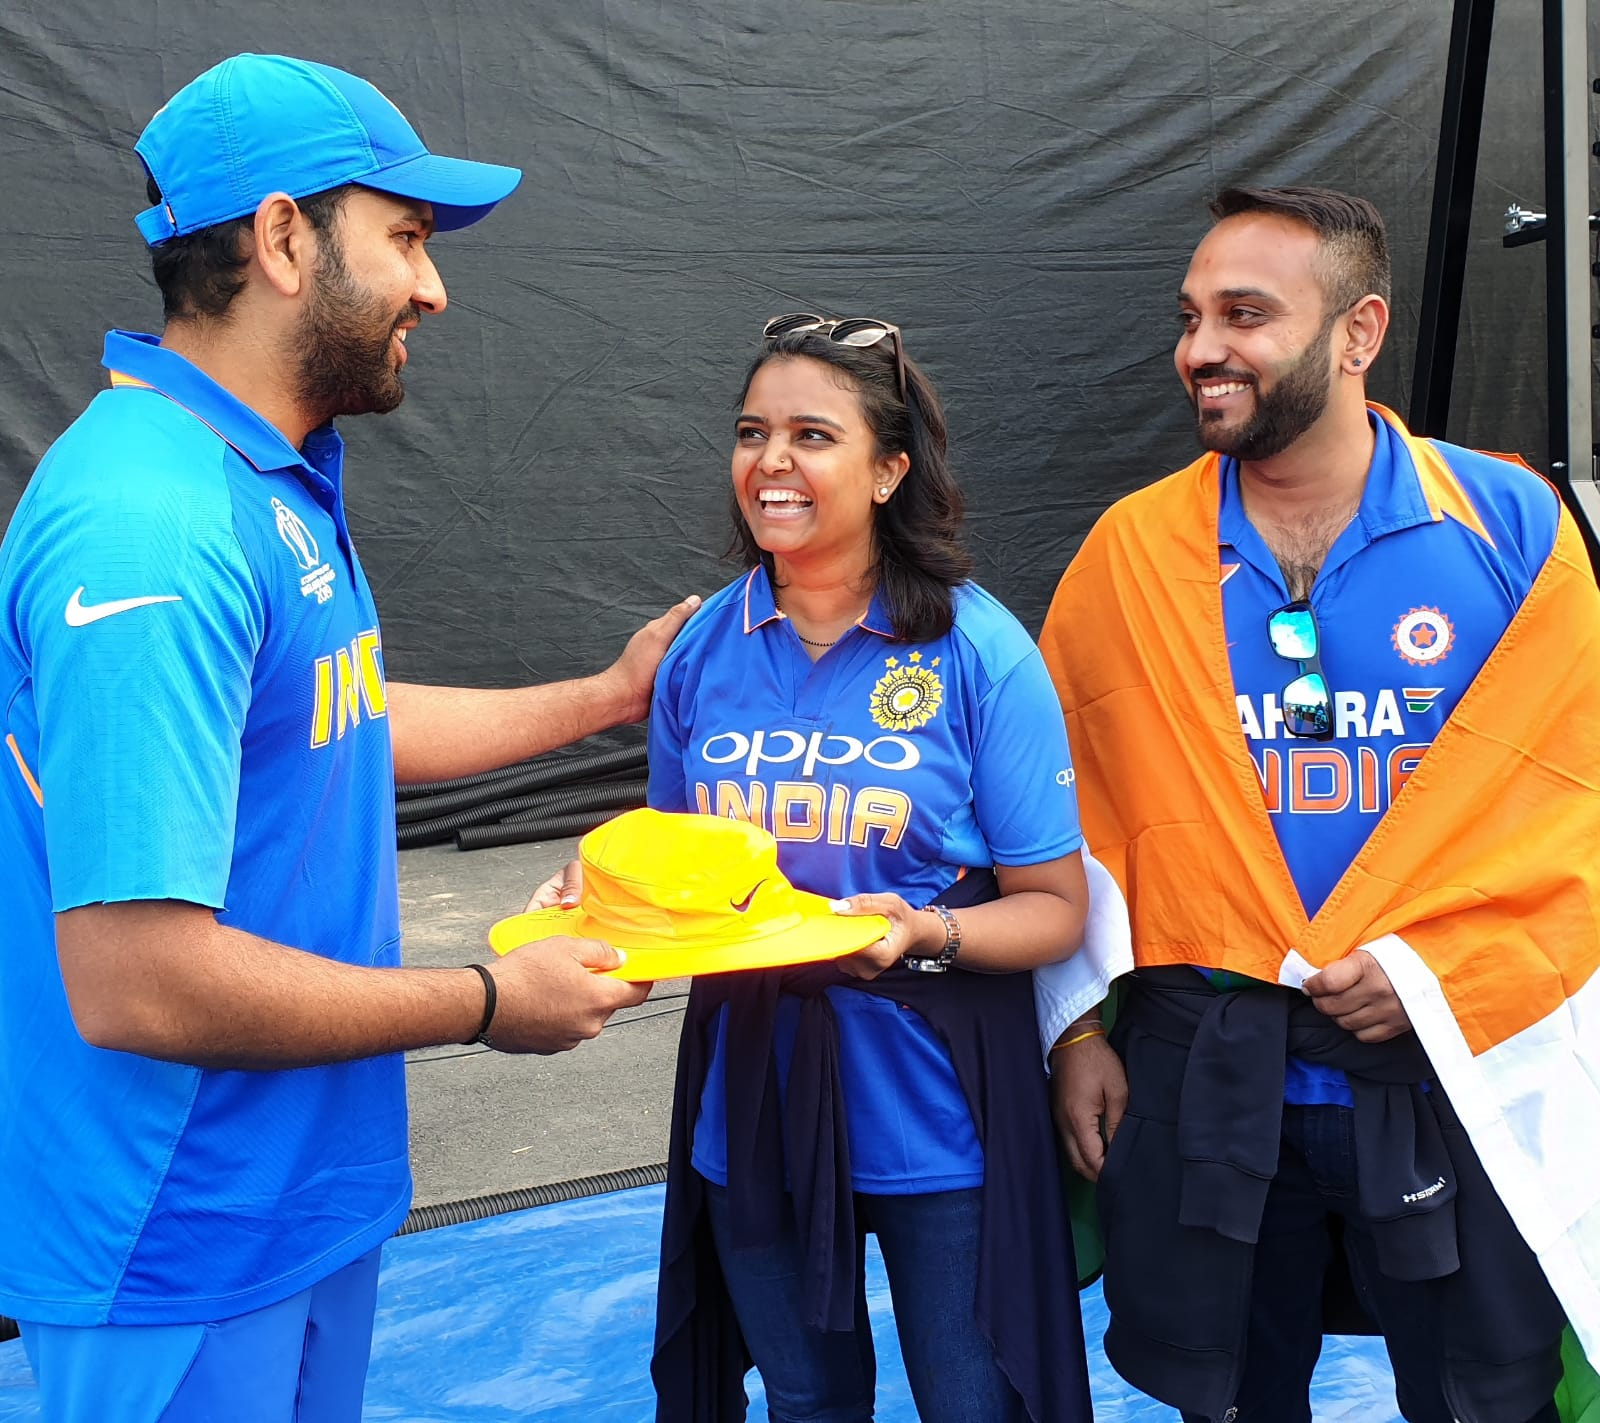 Rohit Sharma present an autographed hat to a fan, Meena, who was hit by the ball.